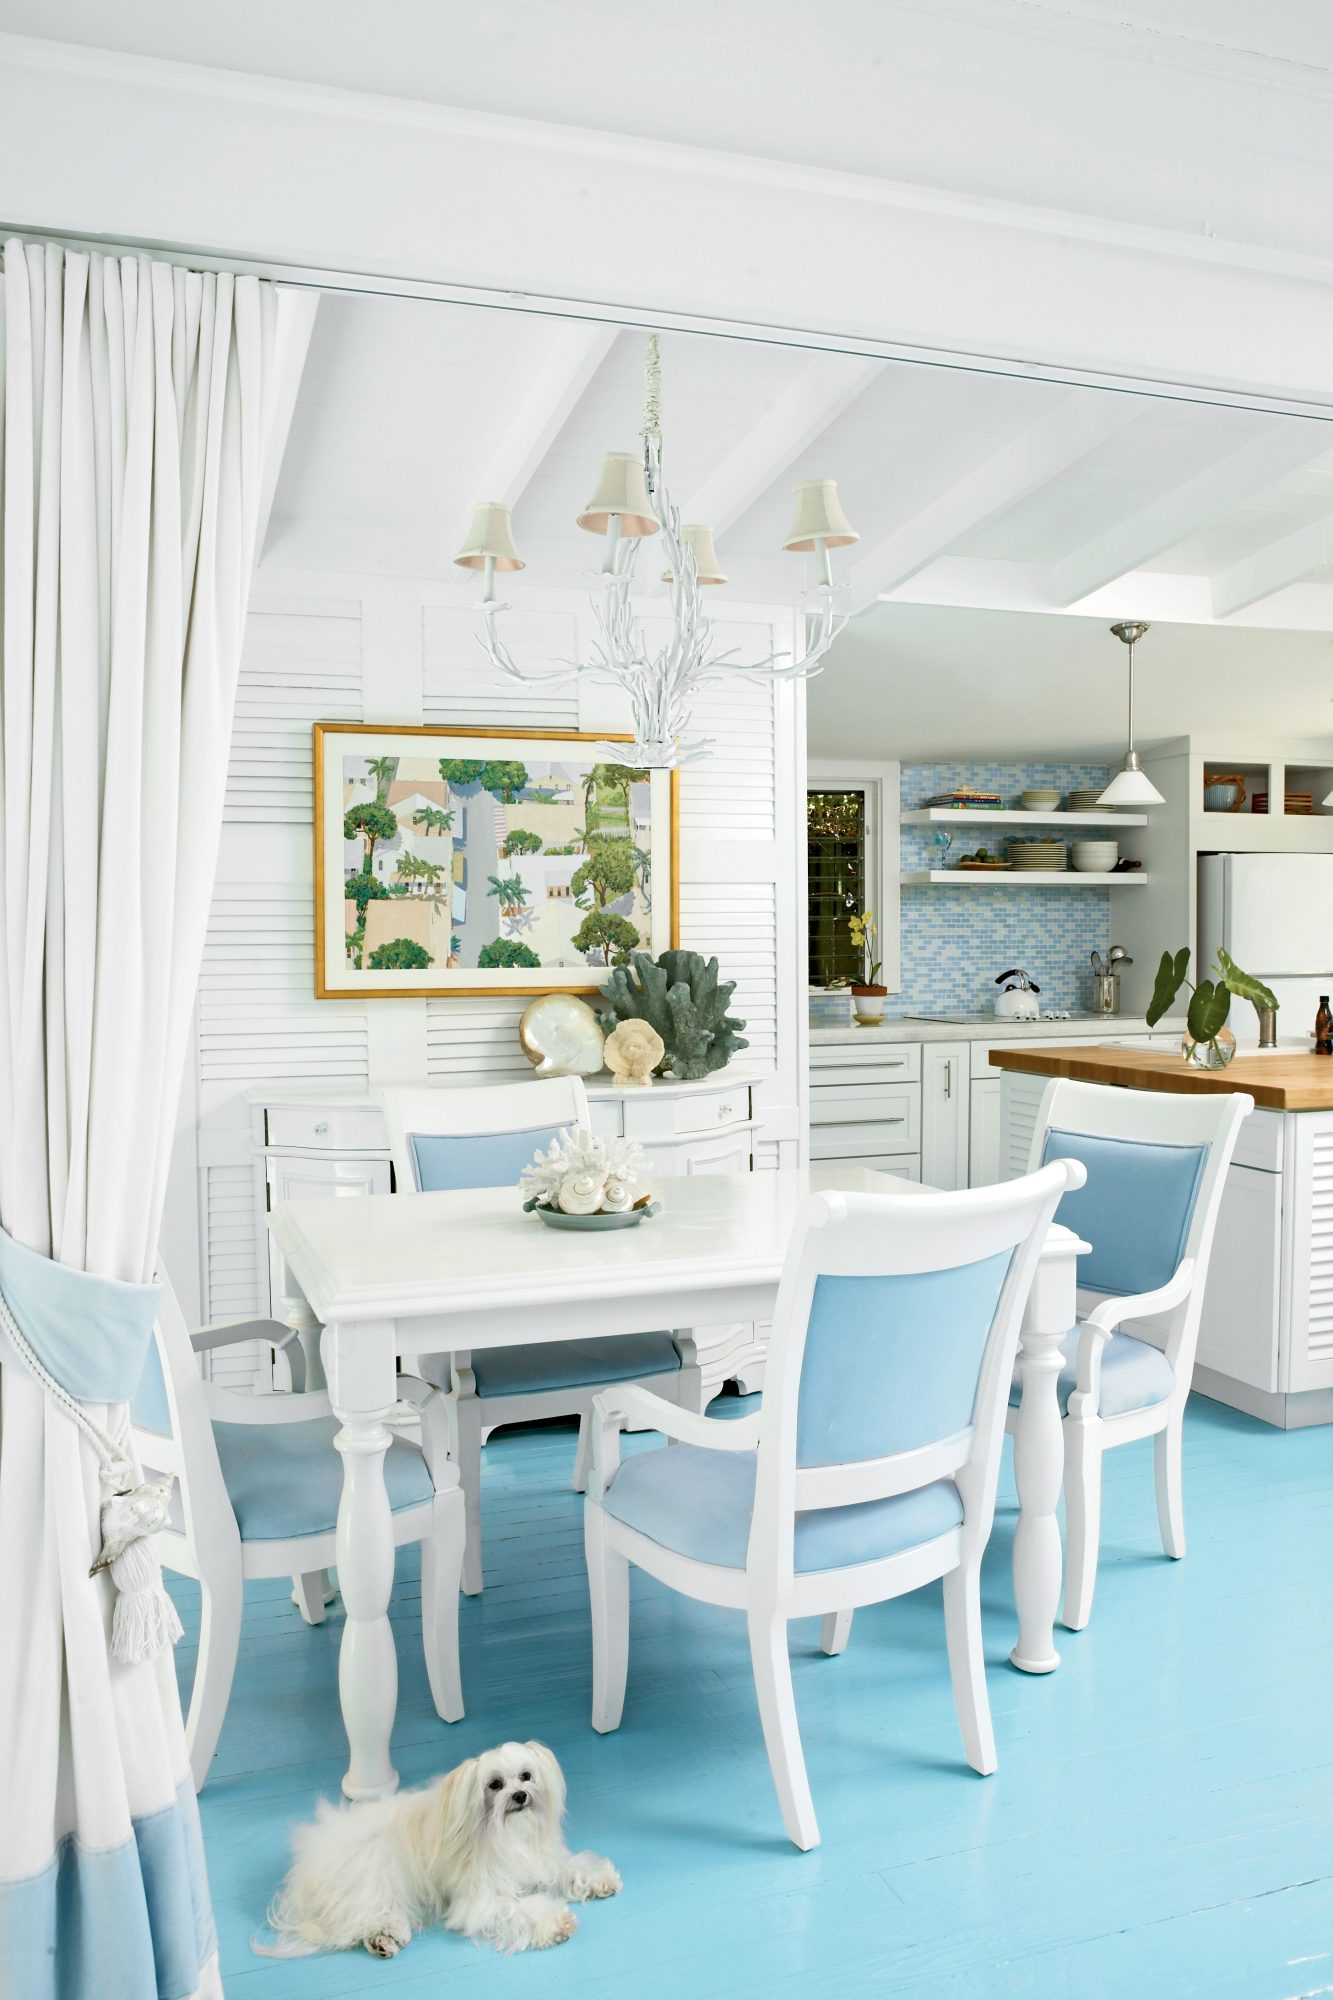 Key West Style Interiors And Home Decor Ideas Southern Living